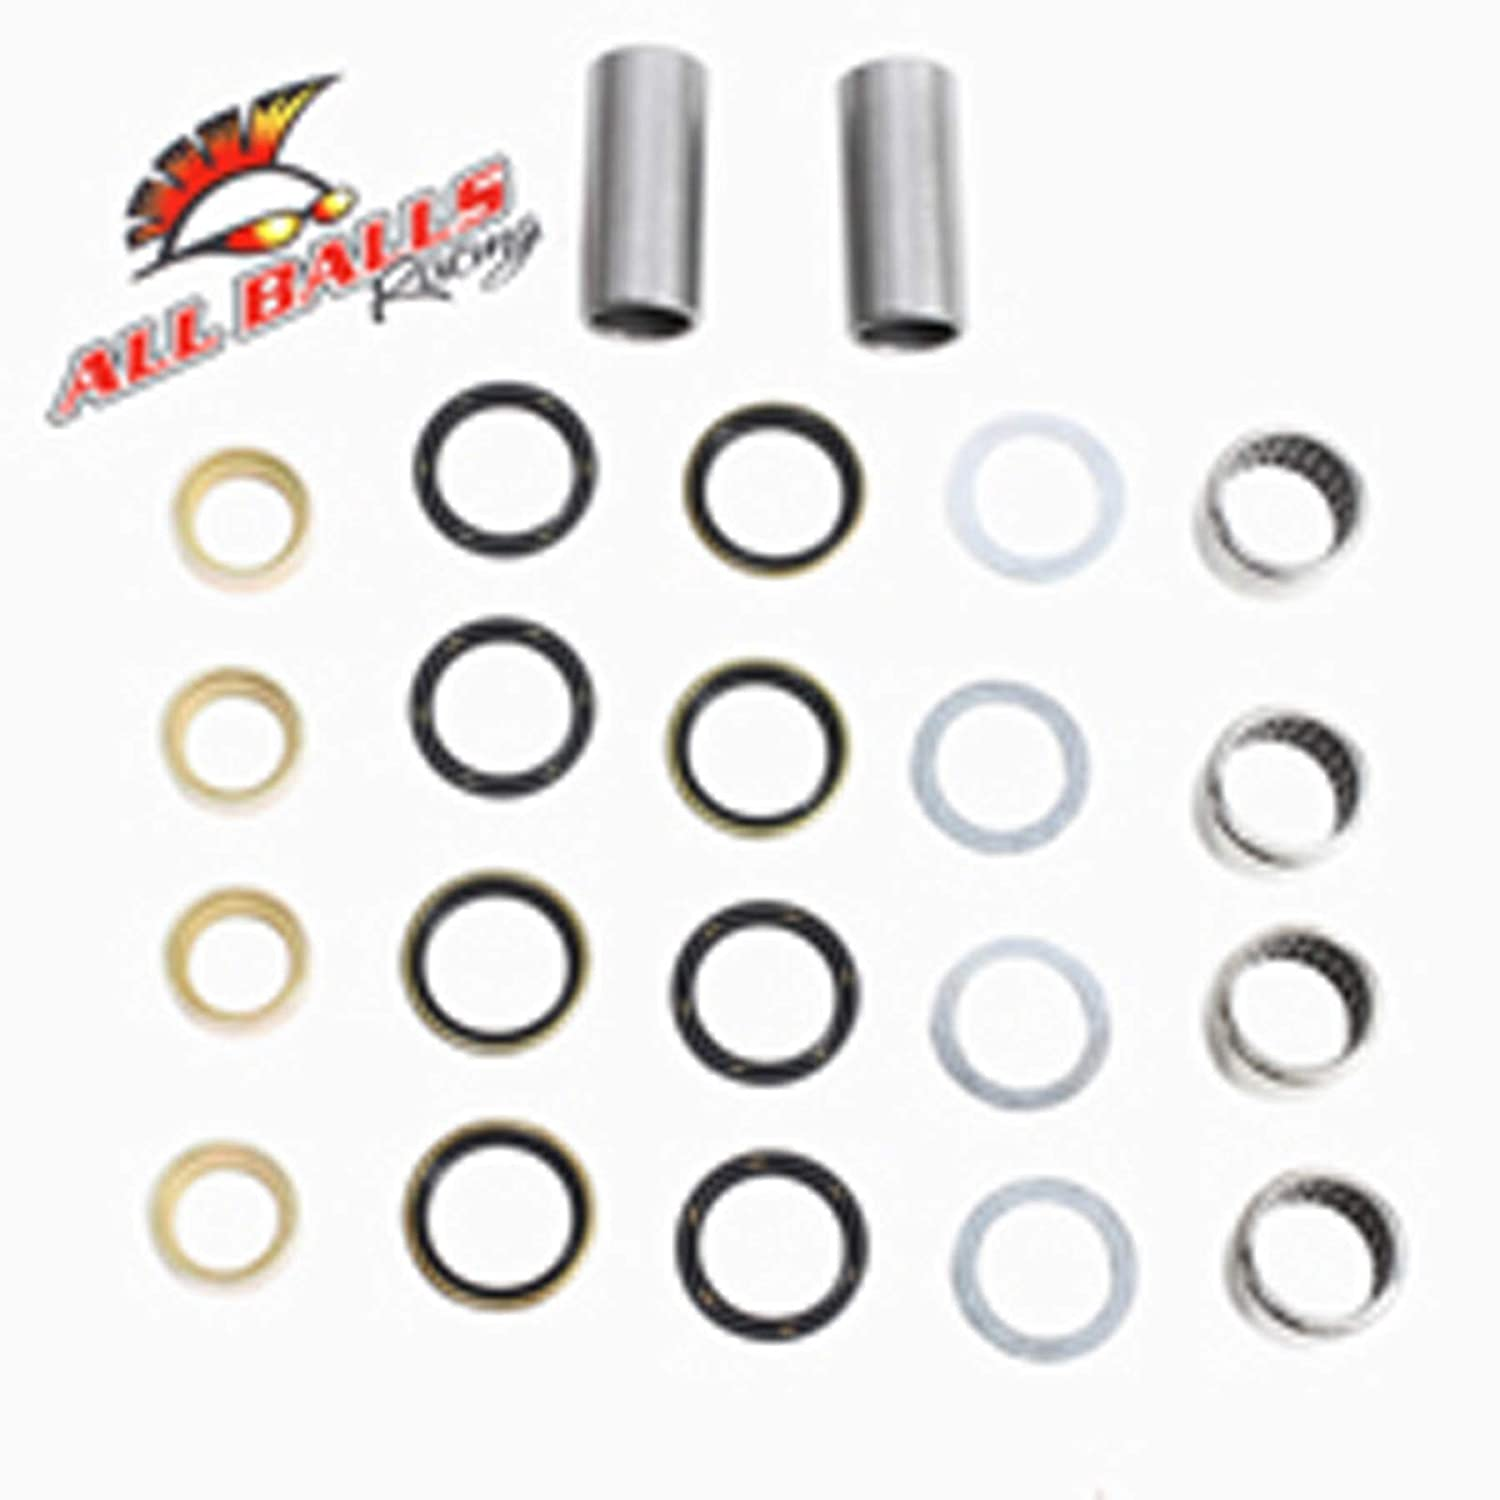 Swing Arm Bearing Kit For 2012 KTM 300 XC-W Offroad Motorcycle~All Balls 28-1168